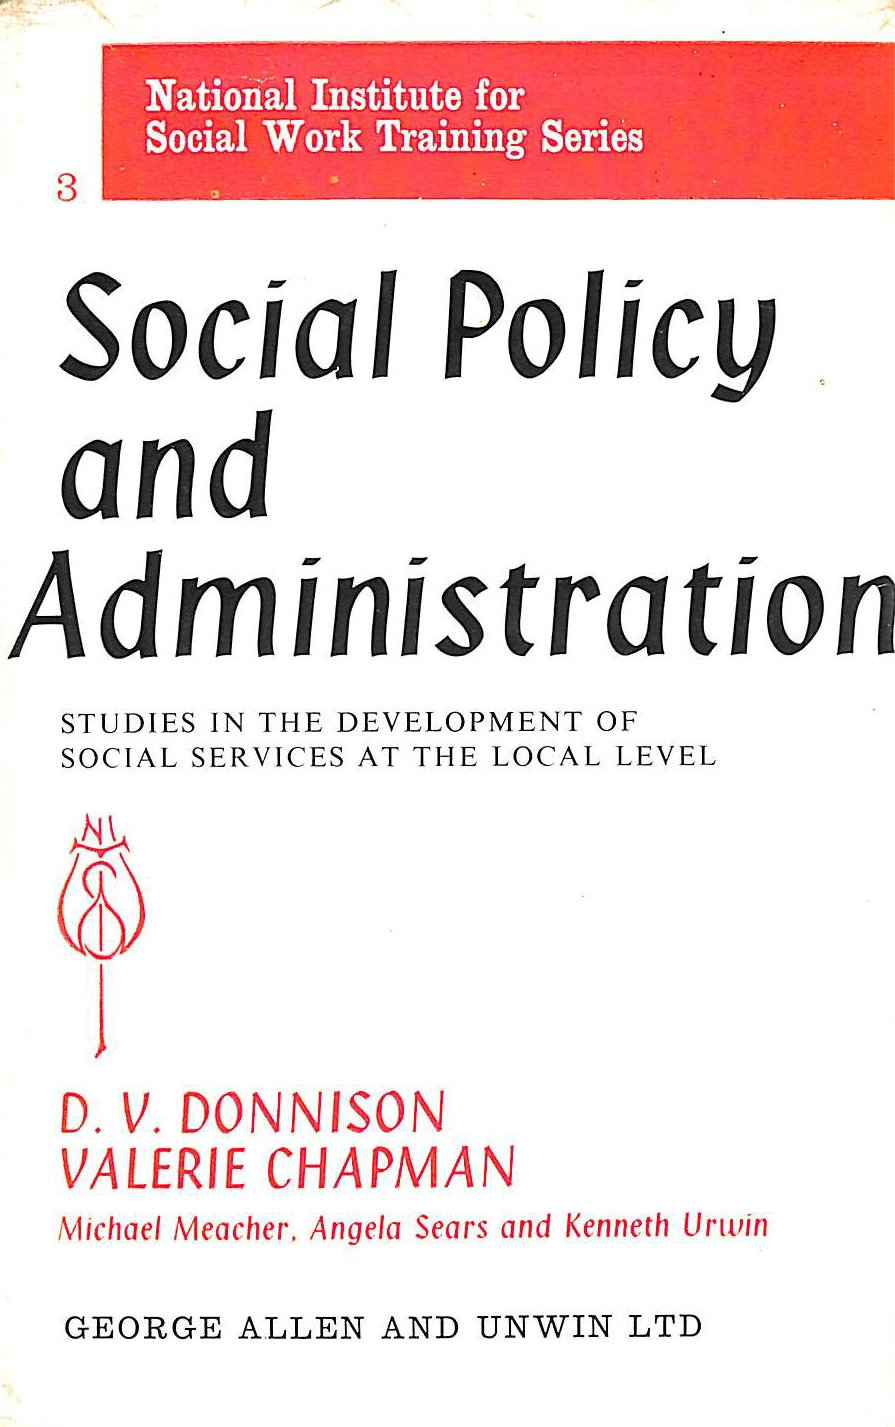 Image for Social policy and administration: Studies in the development of social services at the local level (National Institute for Social Work Training series;no.3)